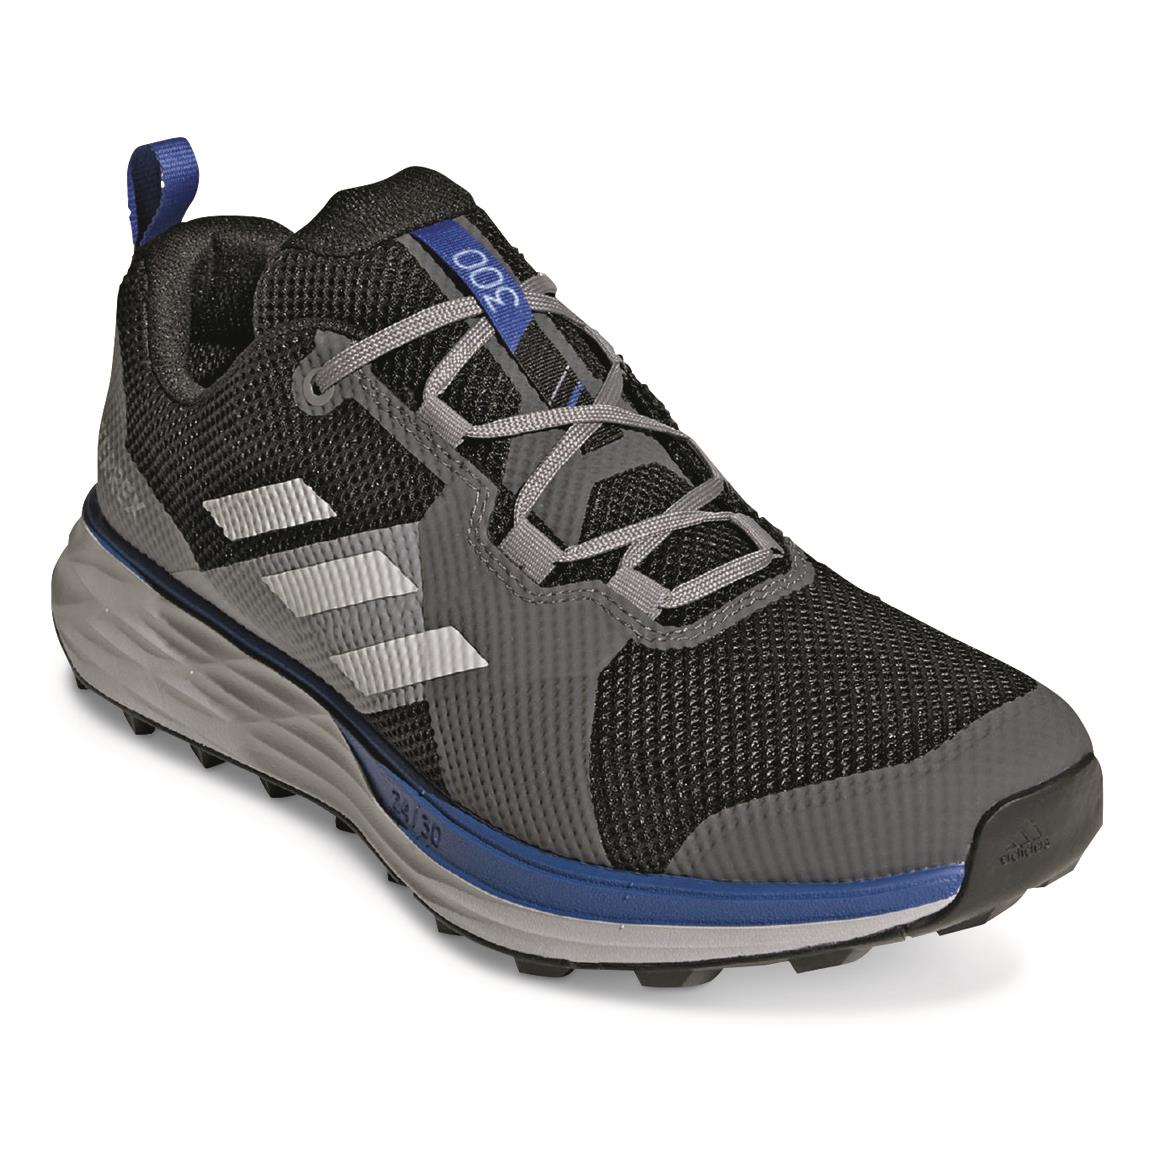 Adidas Men's Terrex Two Trail Running Shoes, Black/grey One/glory Blue